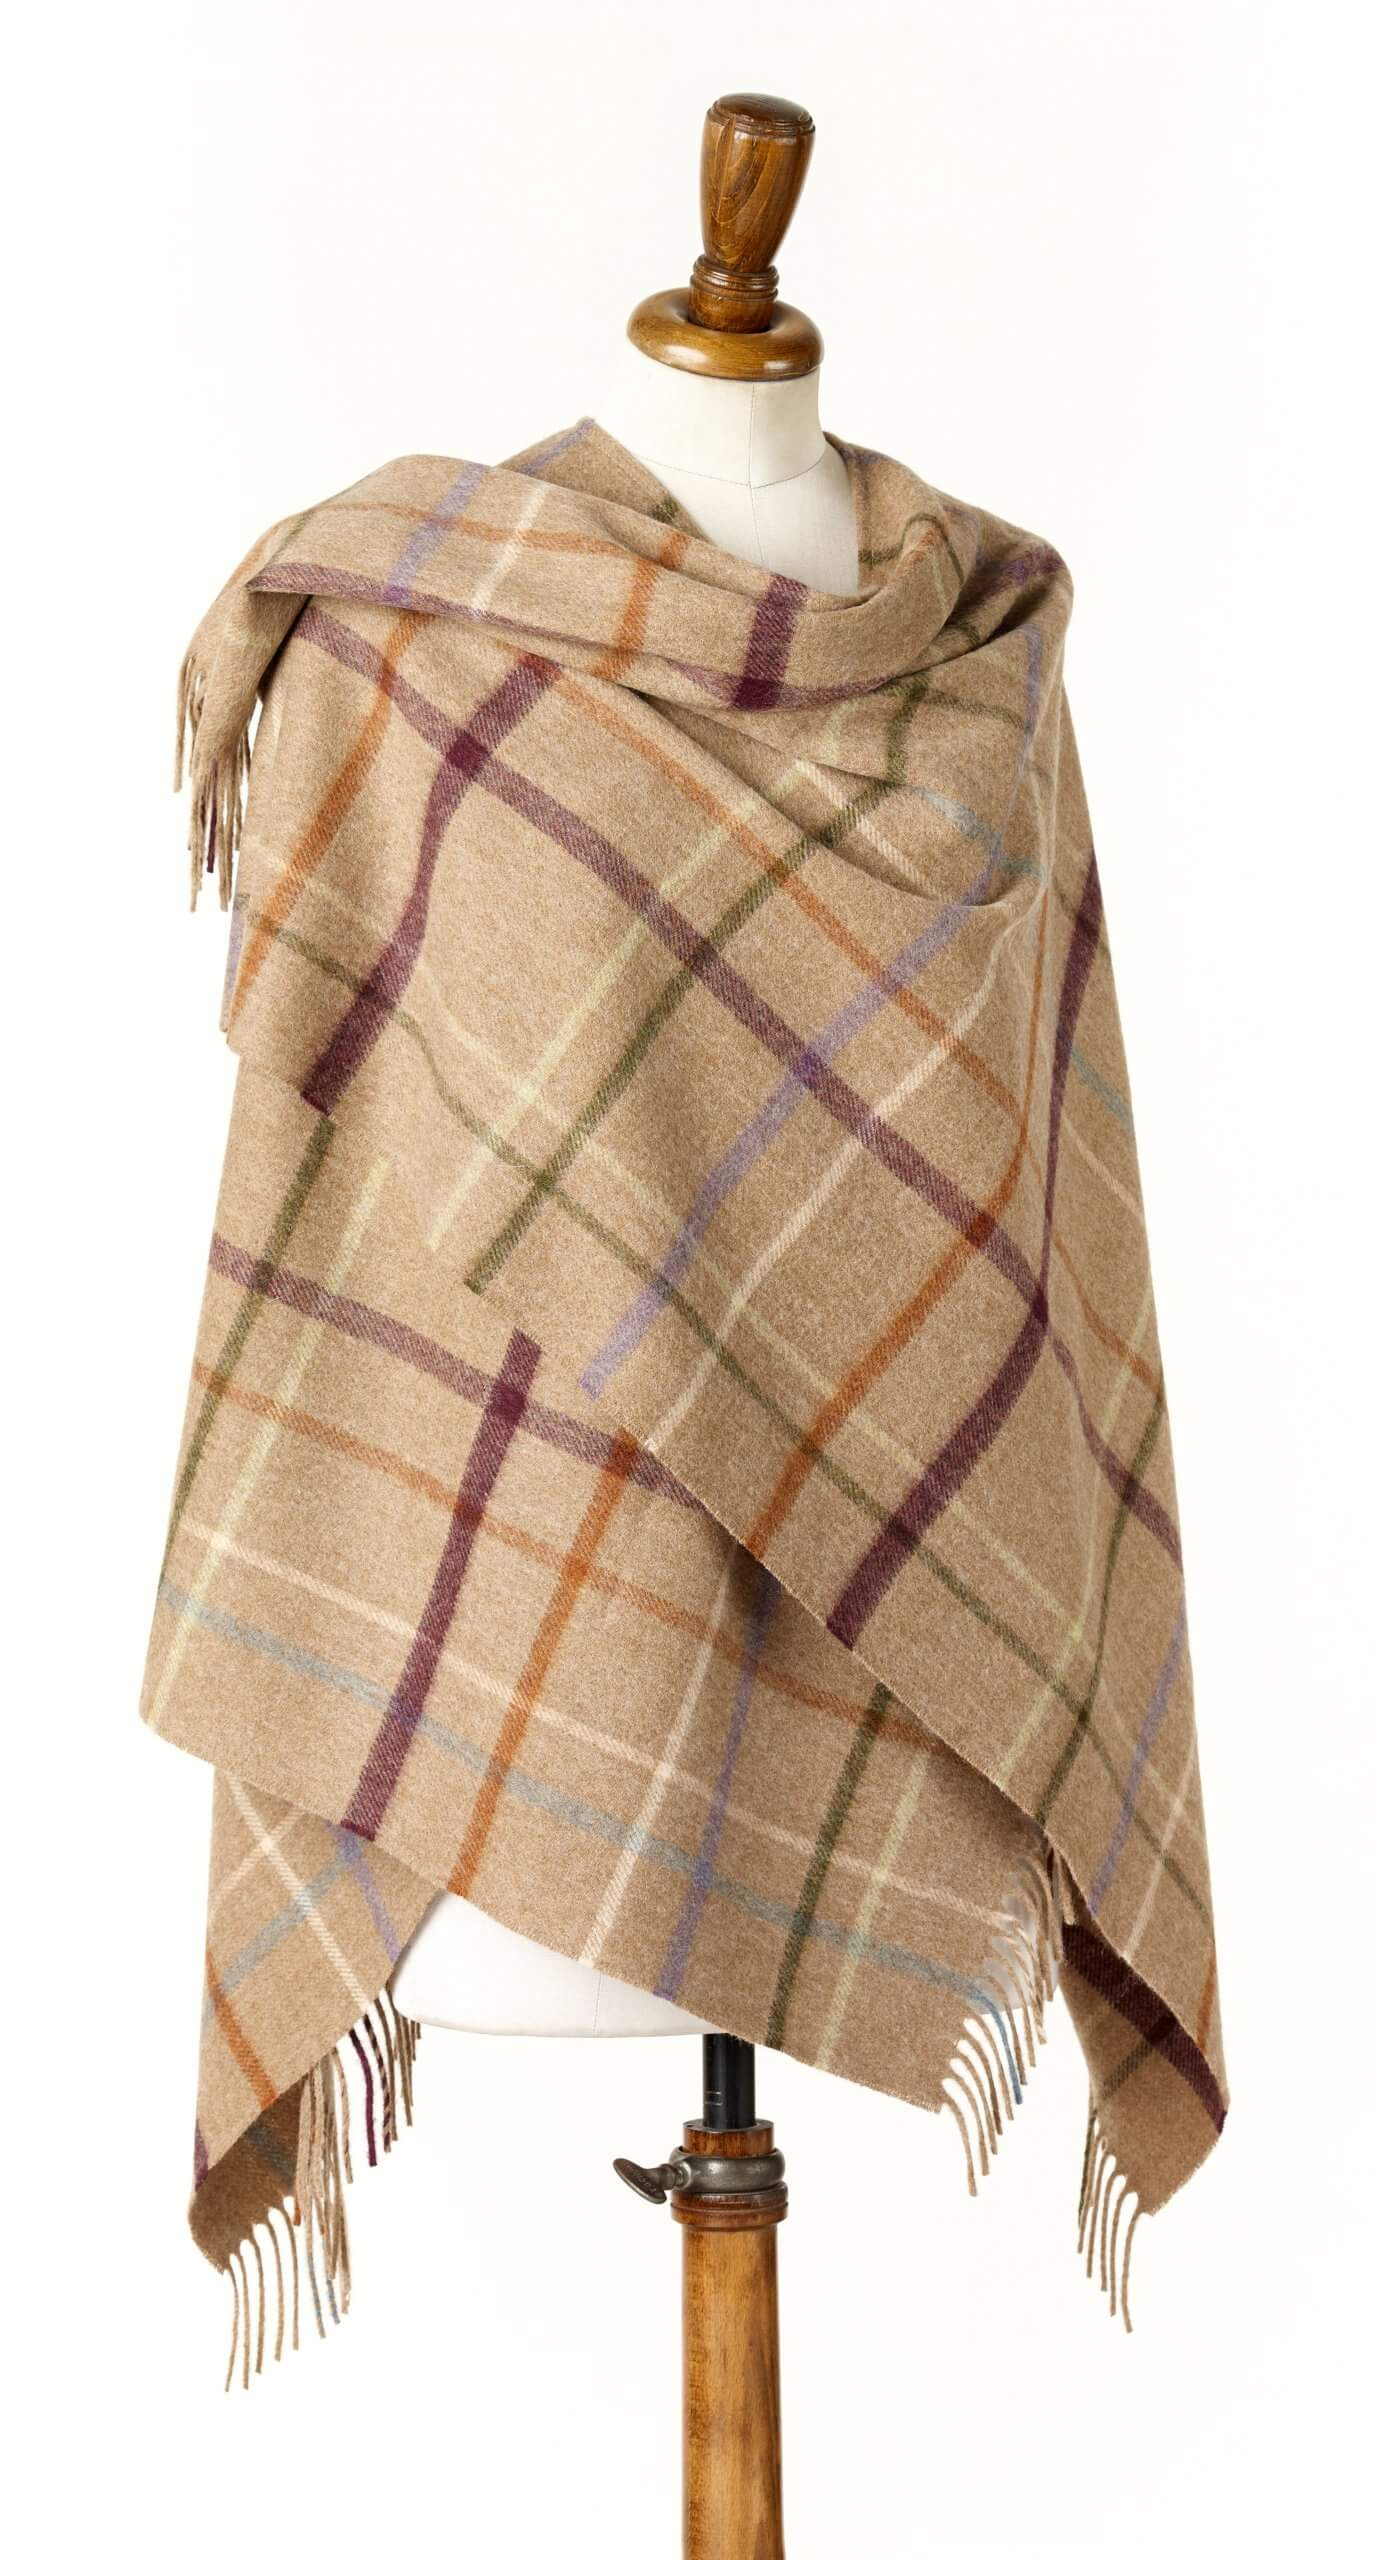 Litton Camel Ladies Lambswool Shawl/Cape